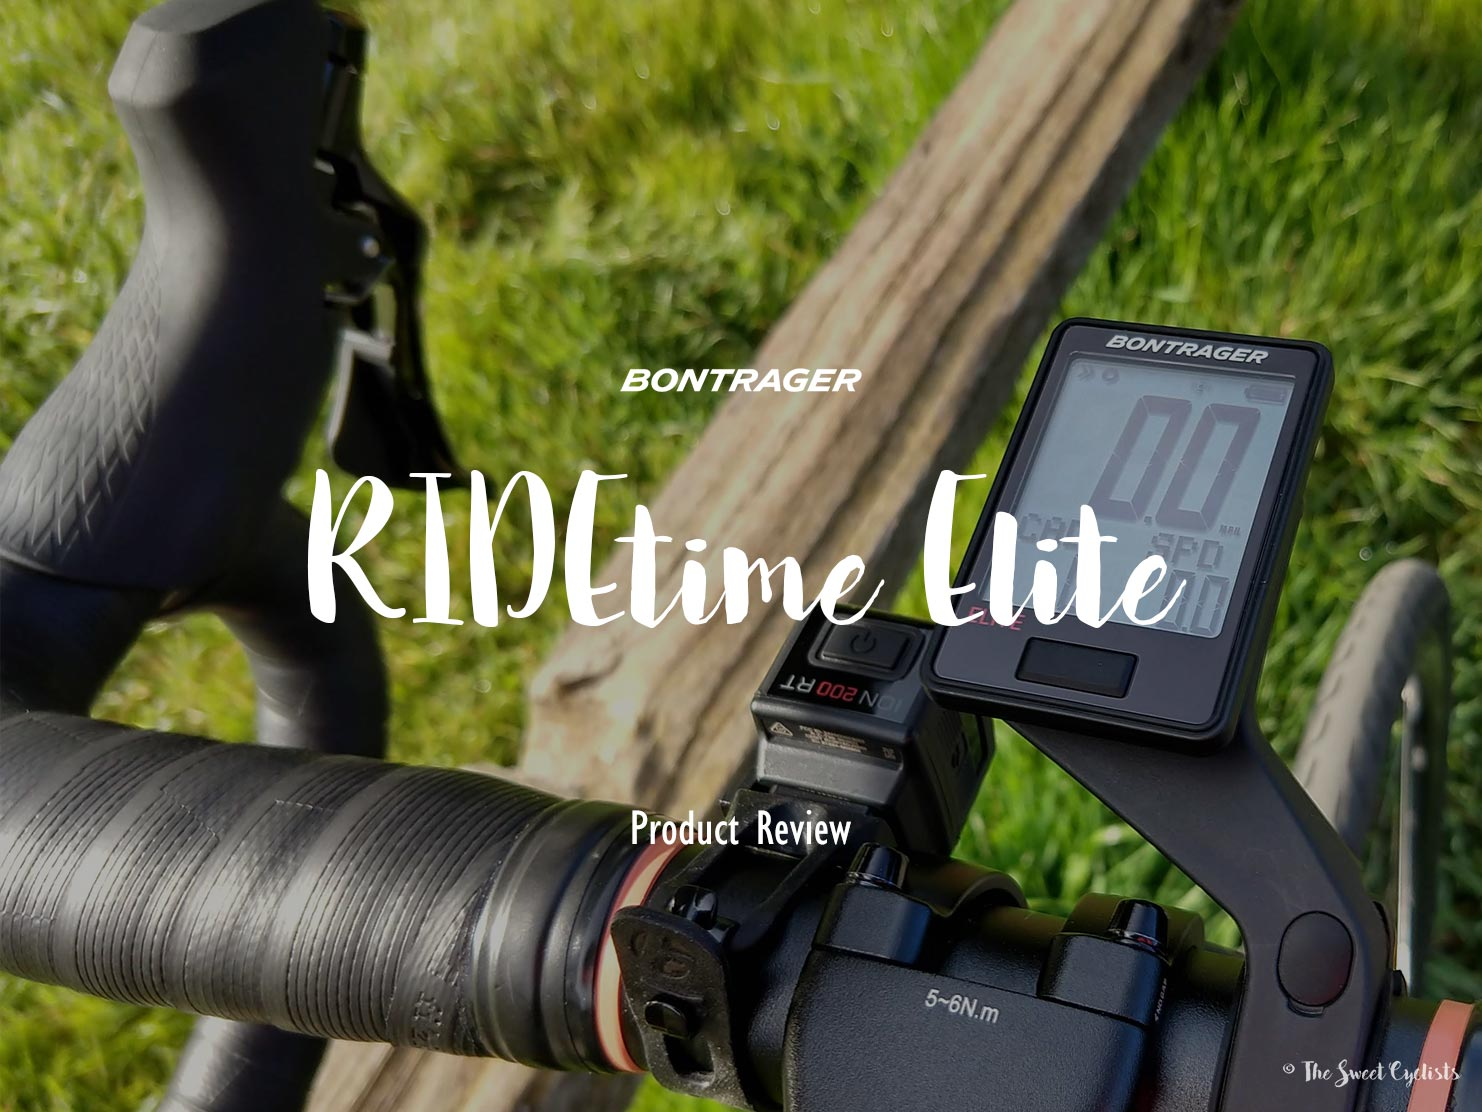 The Bontrager RIDEtime Elite, a simple yet smart cycling computer